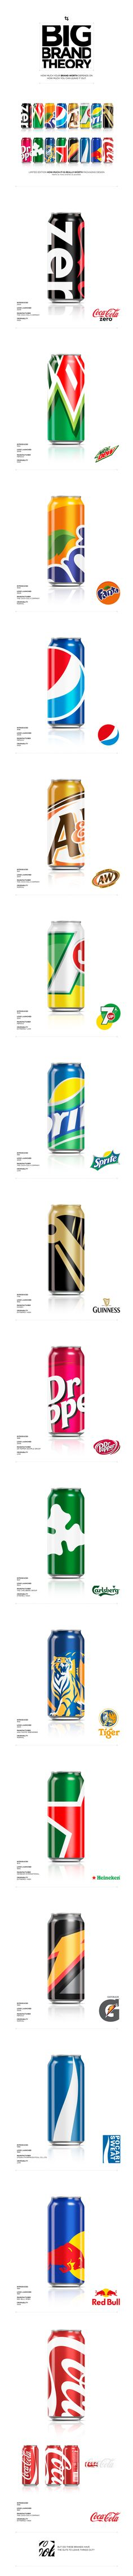 BIG BRAND THEORY: Packaging Design / Ewan Yap